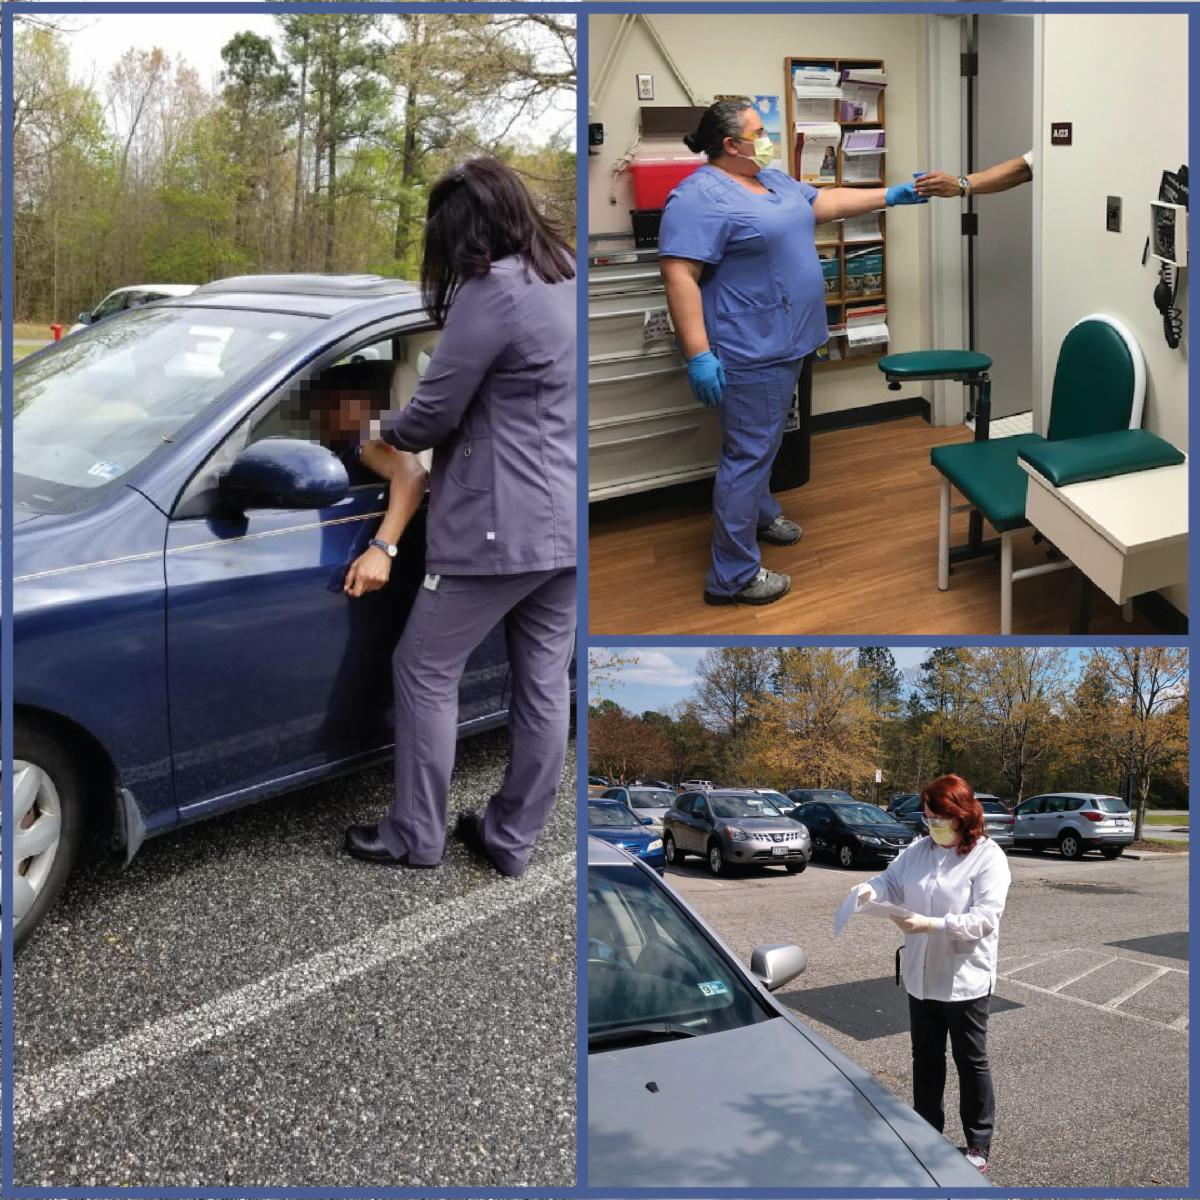 Clockwise, from left: Nie'cole Debates, psychiatric RN, providing a long-acting injection; Monique Hayes, OBOT RN, handing a cup for a urine drug screen; Rose Rodgers, medication assistant, handing out medications from Westwood pharmacy.